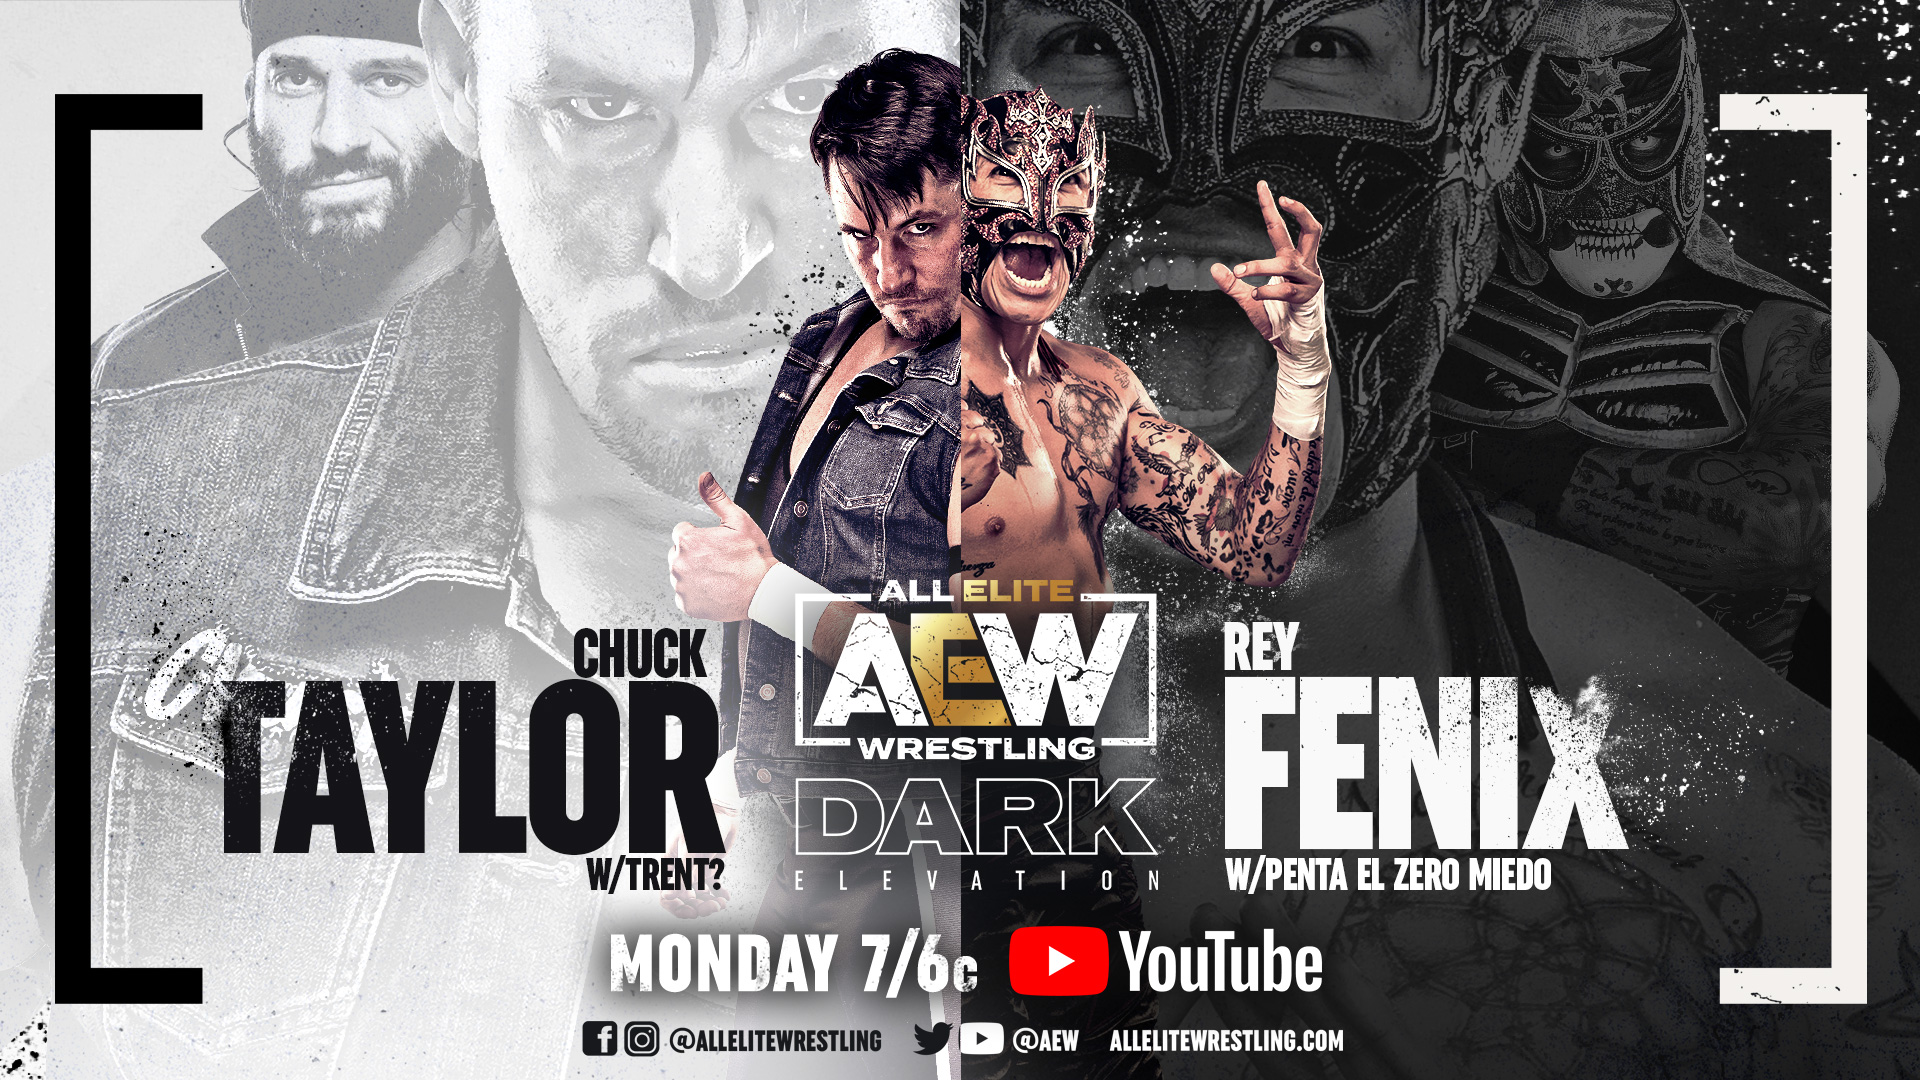 AEW Dark: Elevation Results (4/29): Chuck Taylor Vs. Rey Fenix, Joey Janela Vs. Matt Sydal